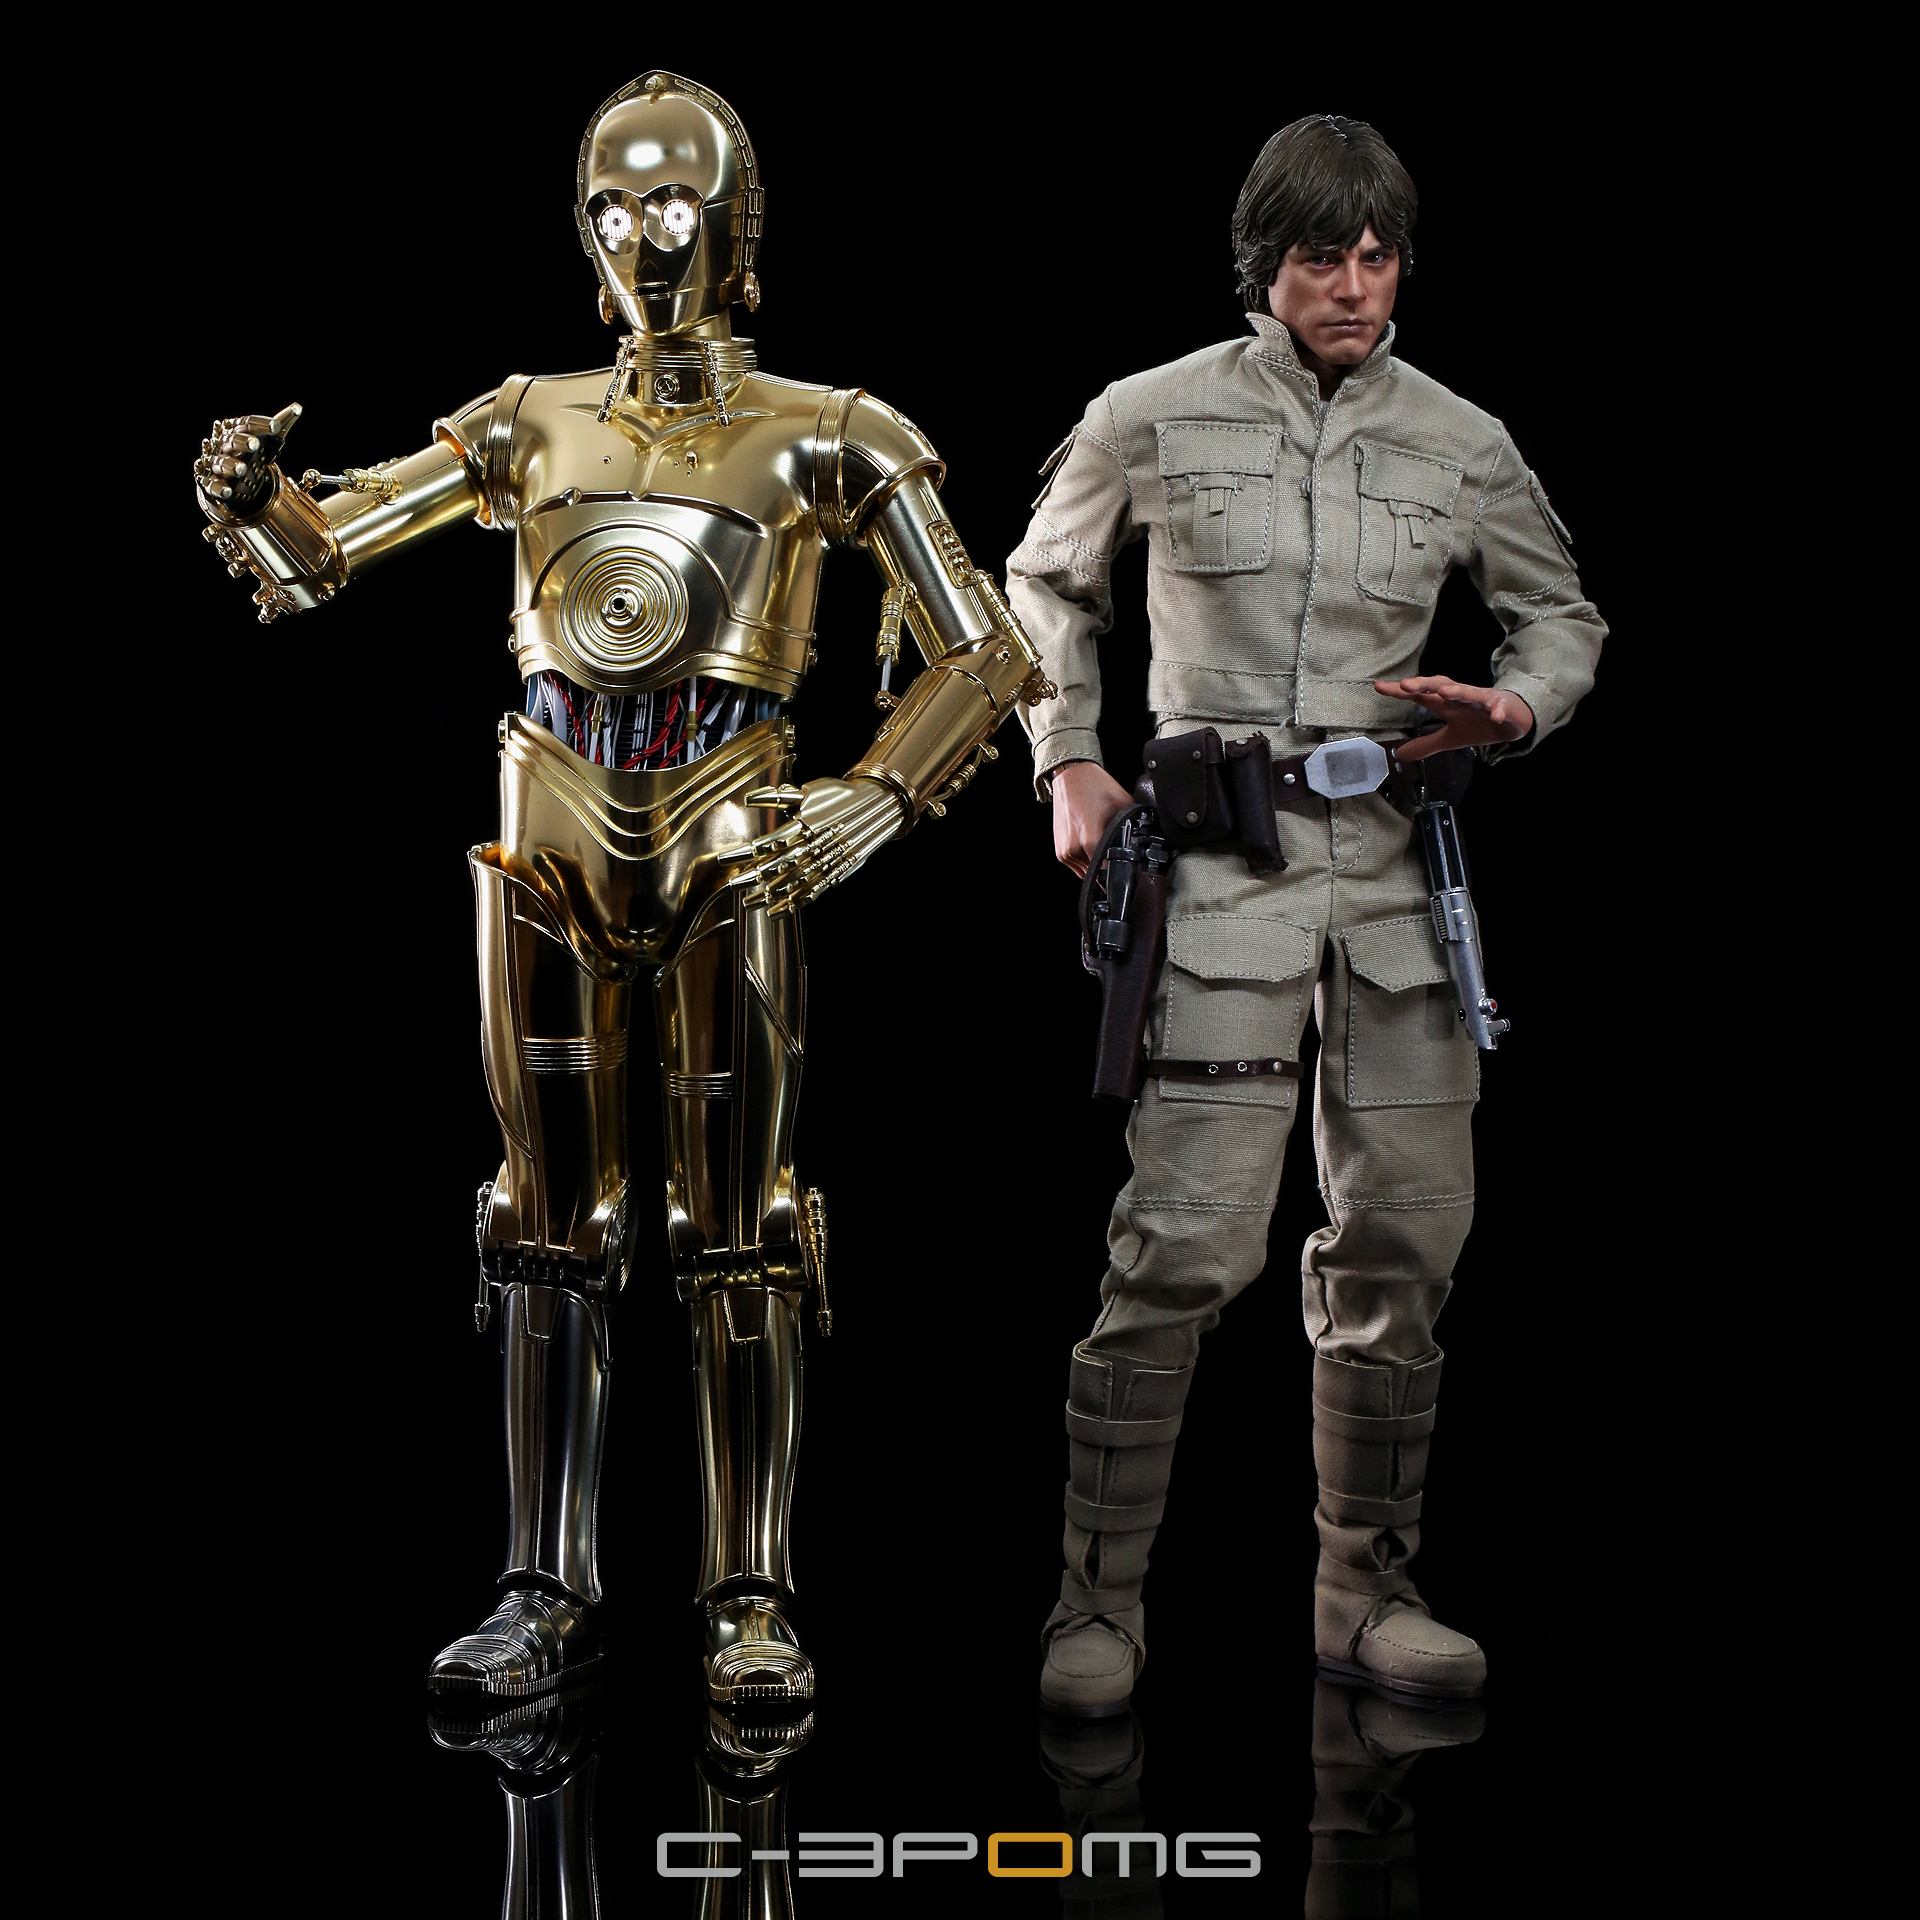 [Bandai] Star Wars: C-3PO - Perfect Model 1/6 scale - LANÇADO!!! - Página 2 C-3PO1210_zps280a4be9